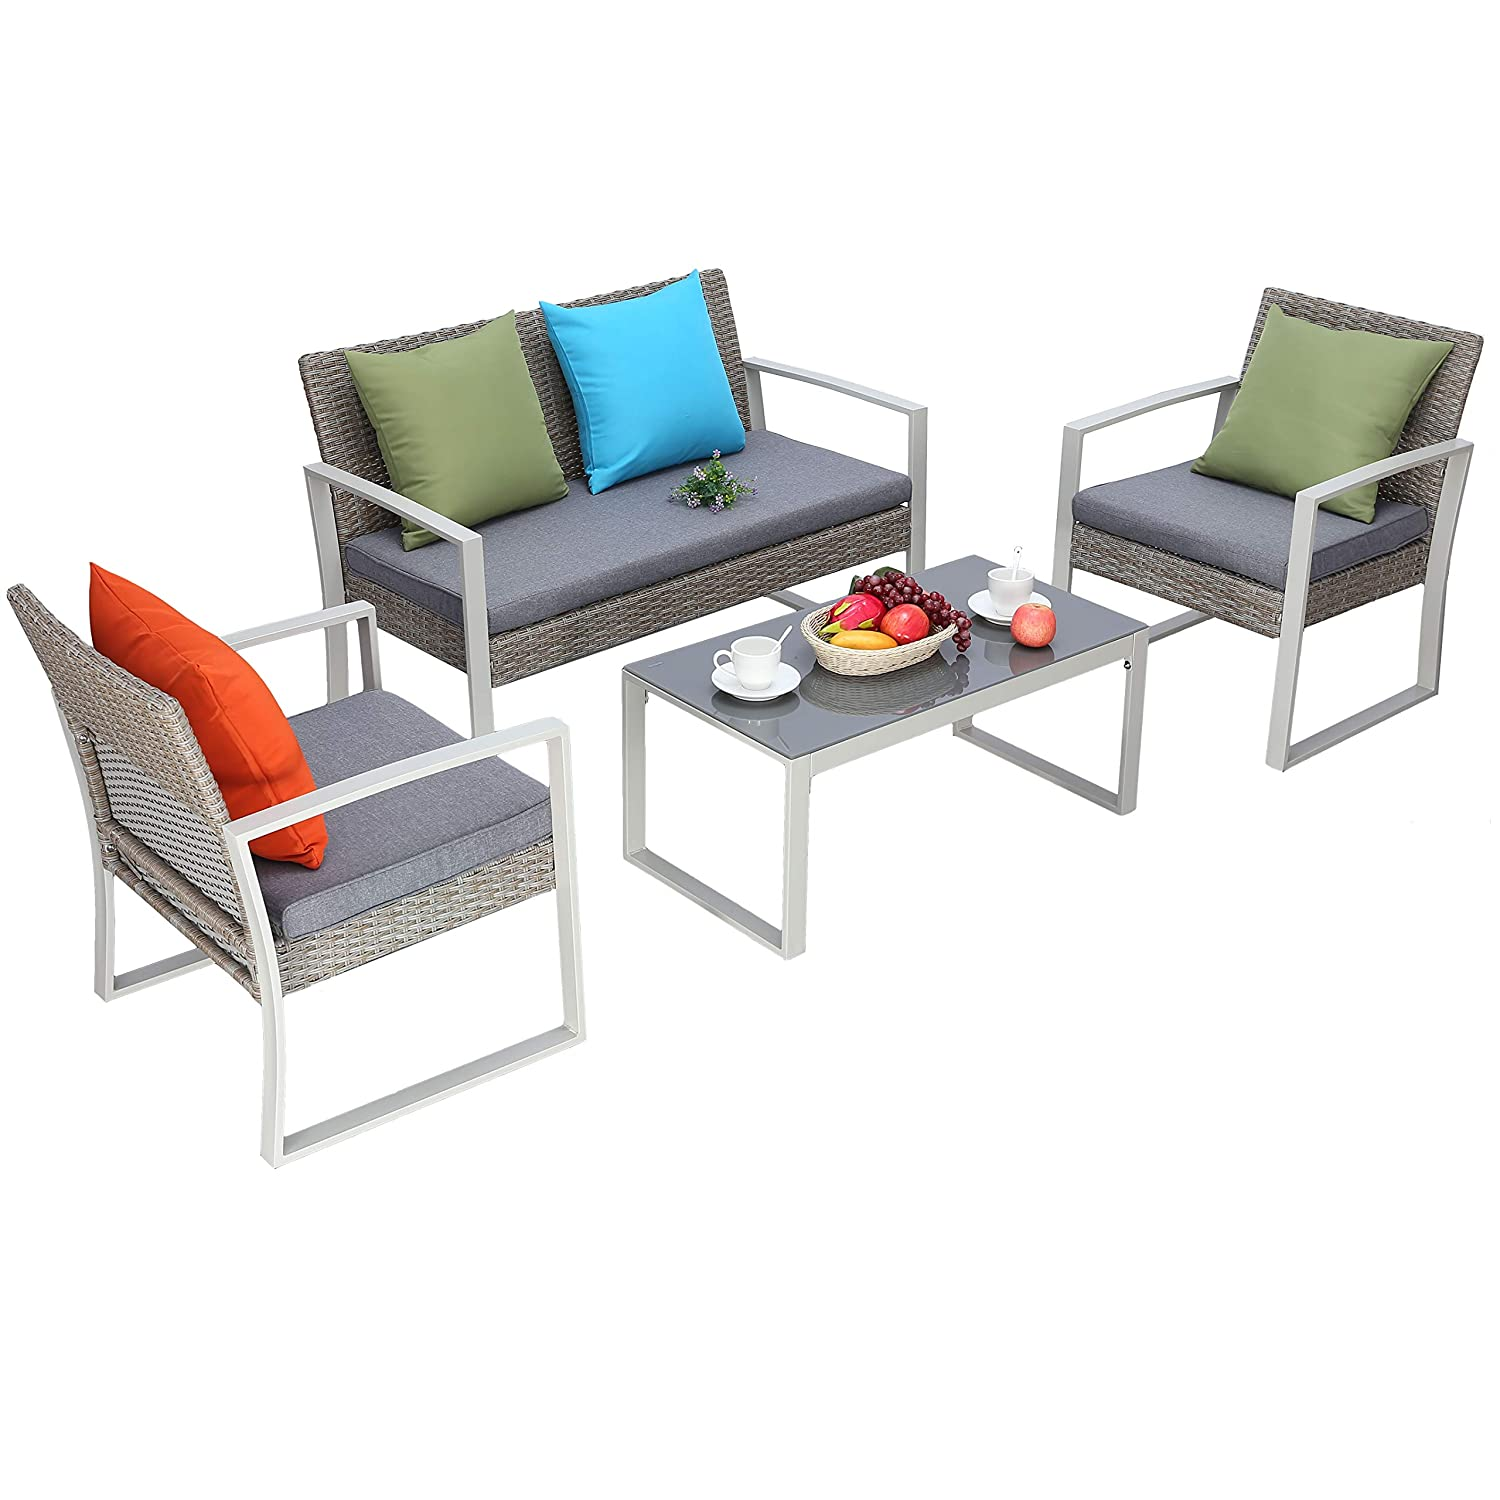 Do4u 4 pcs outdoor patio furniture conversation set cushioned pe wicker bistro table set with coffee table loveseat 2 single sofas durable steel garden